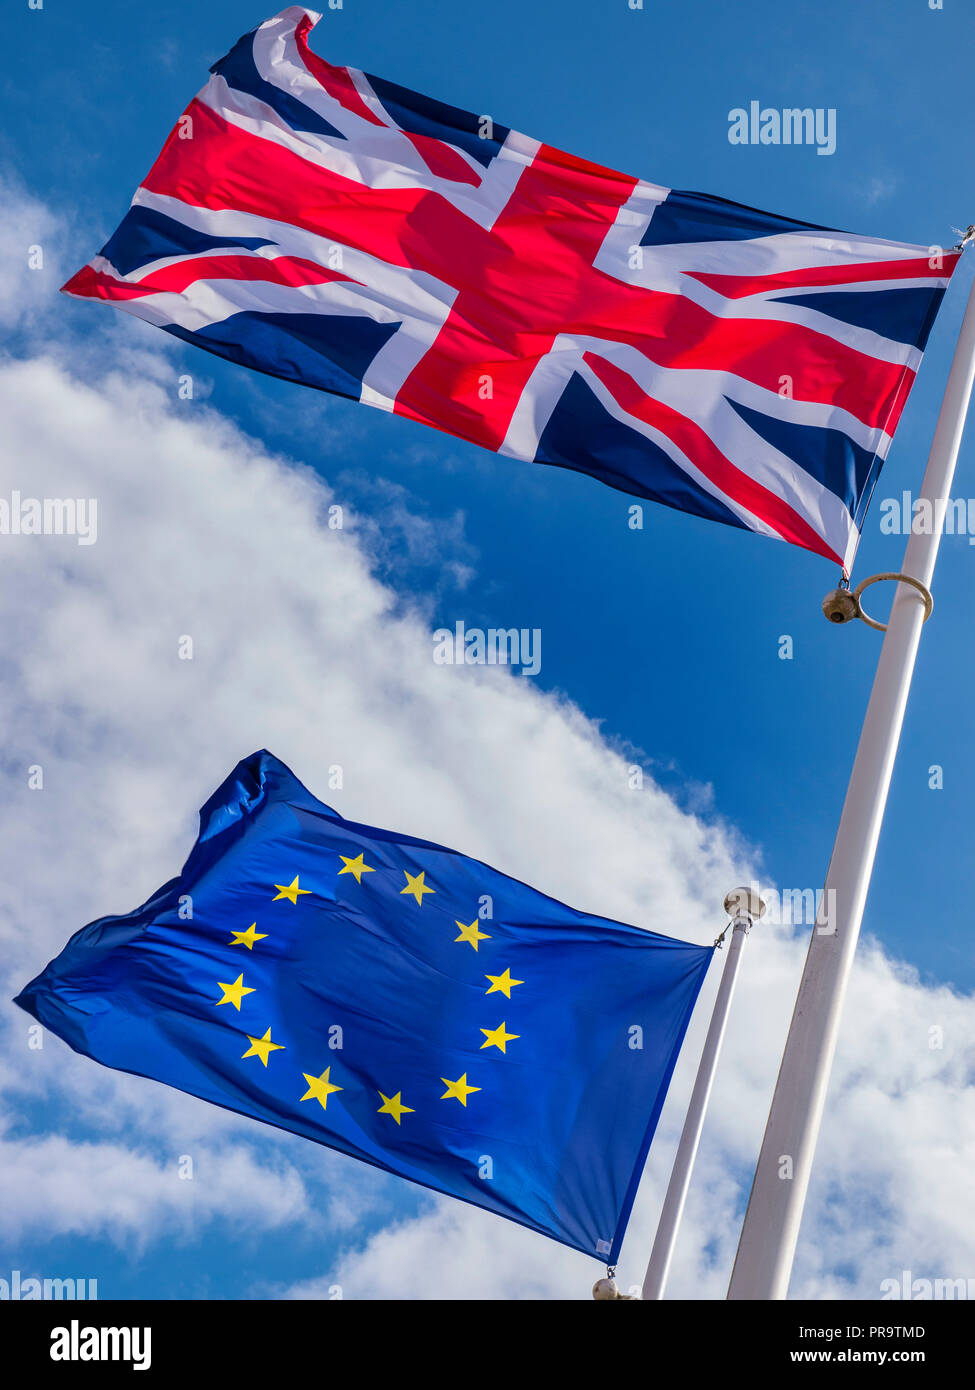 BREXIT UK Union Jack Flag flying high above EU European Flag in a stiff breeze on a sunlit day with blue sky divided by clouds - Stock Image